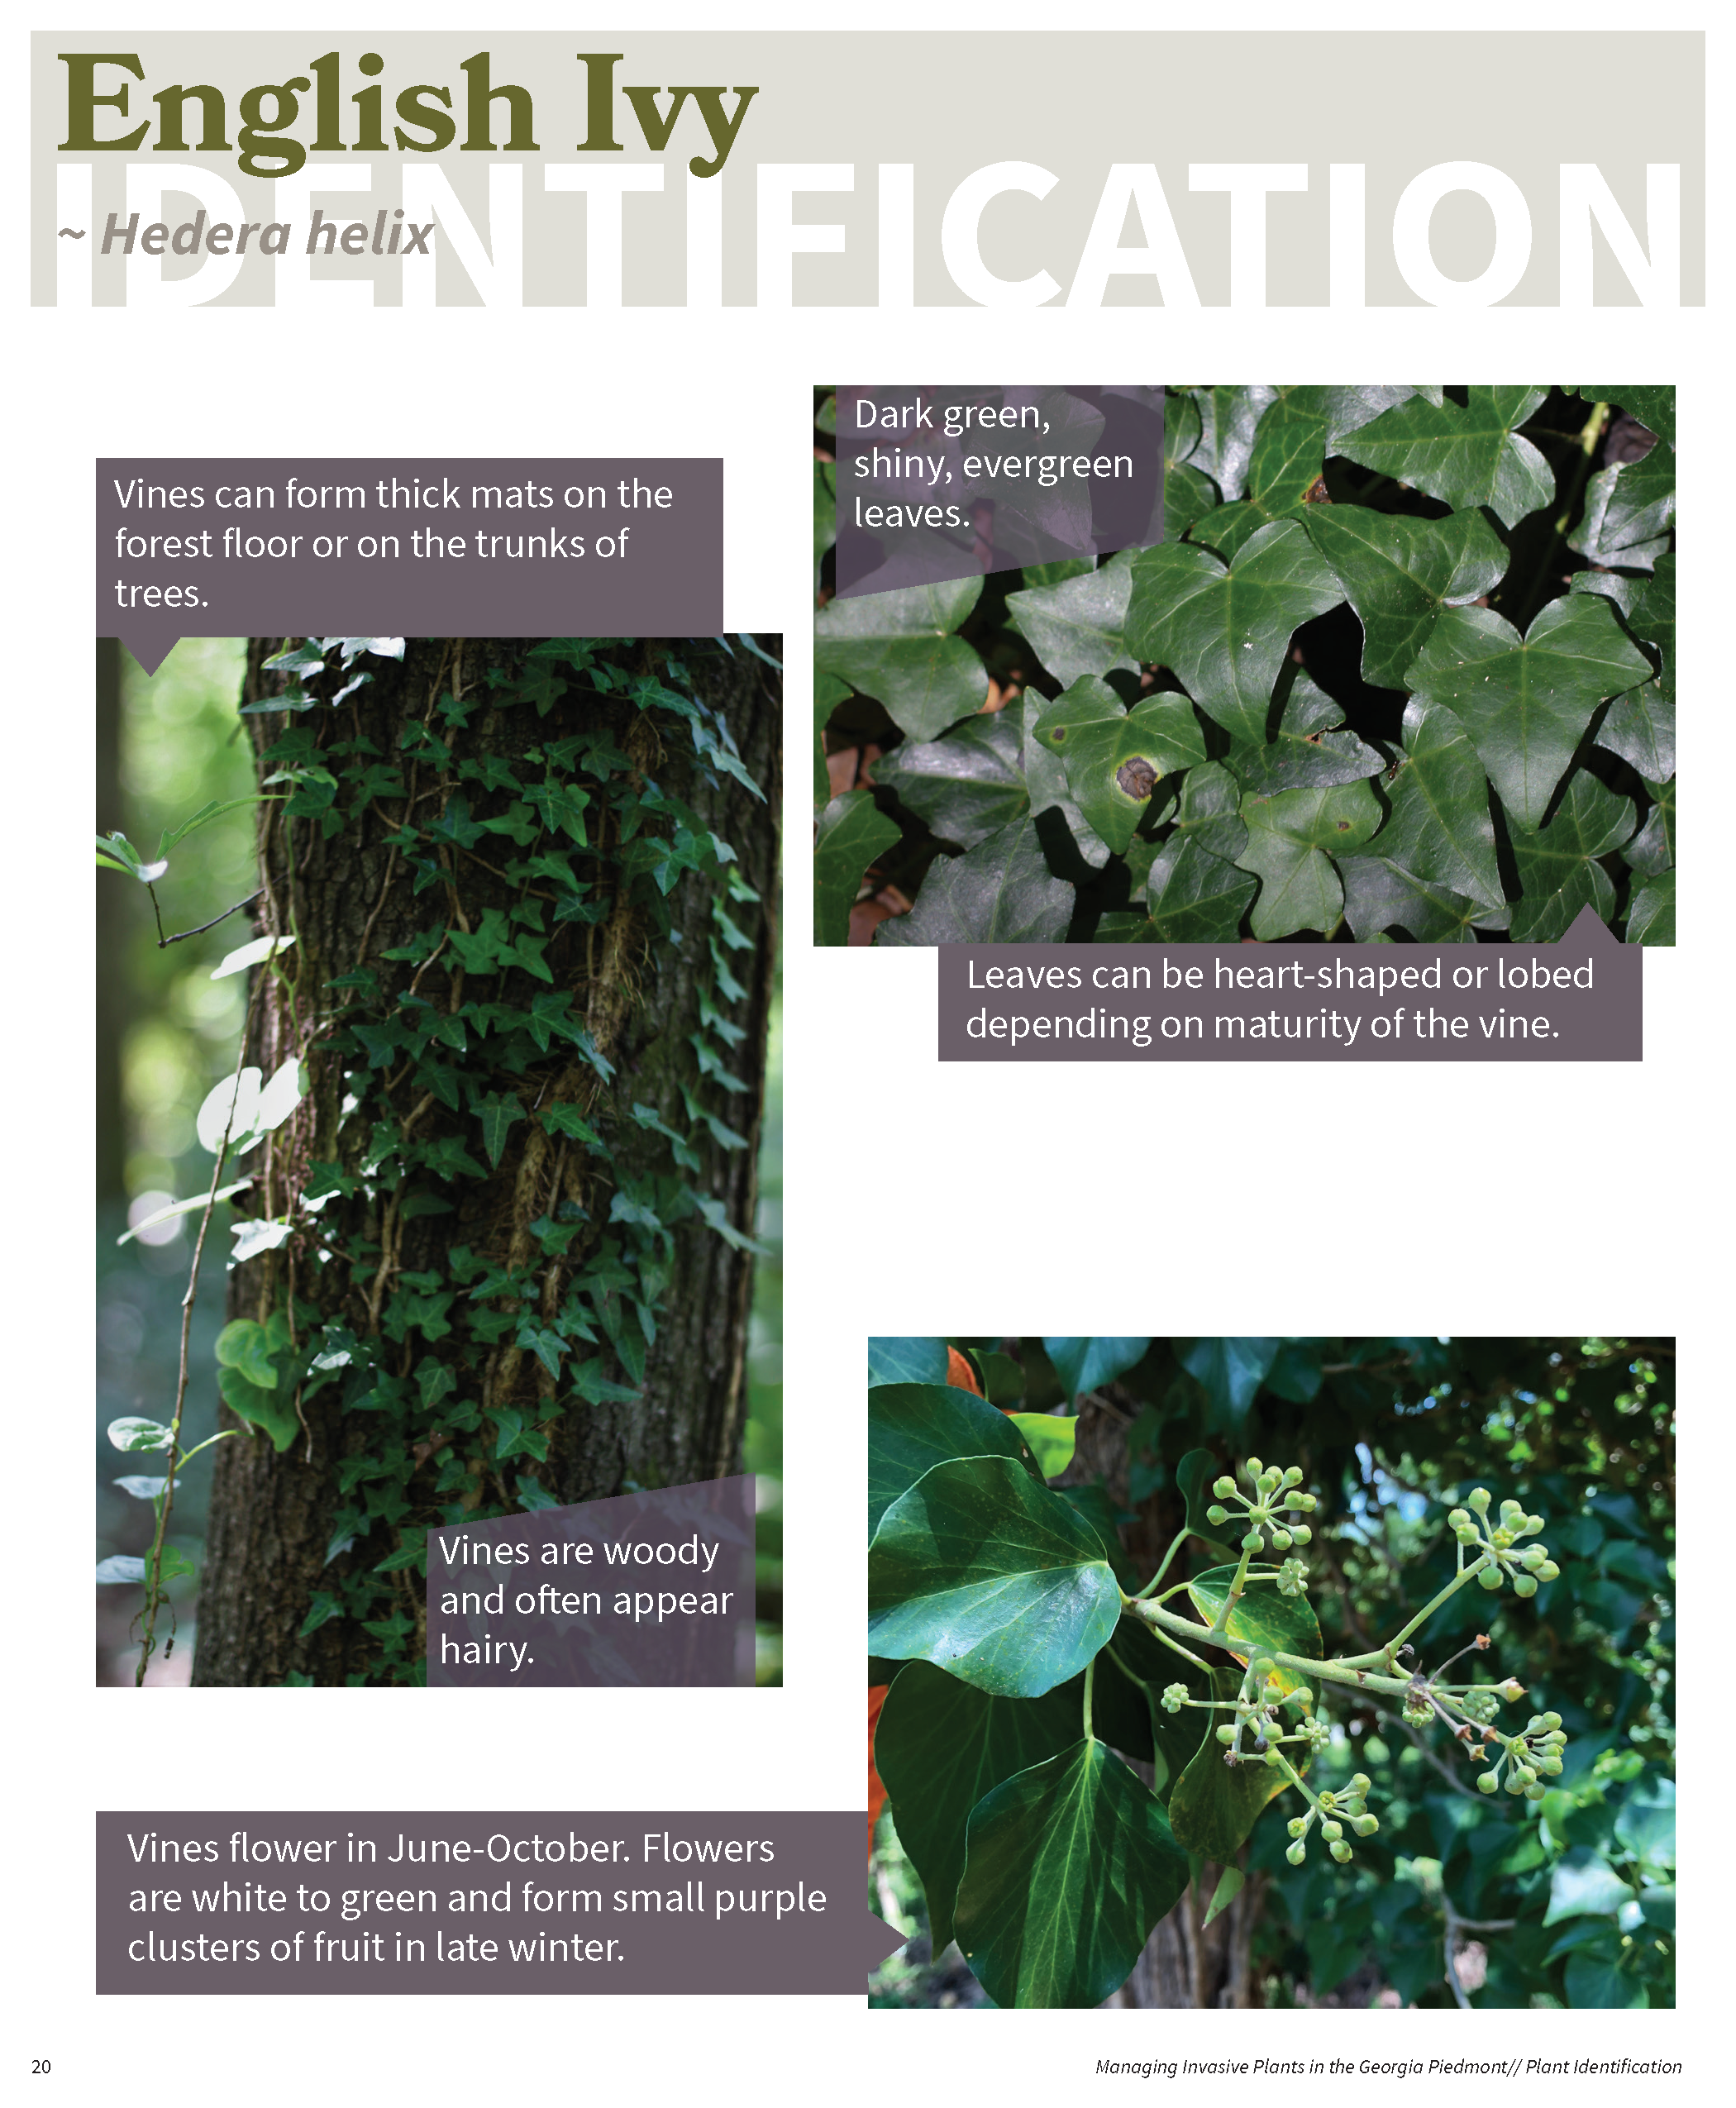 Managing Invasive Plants in the GA Piedmont for web_Page_19